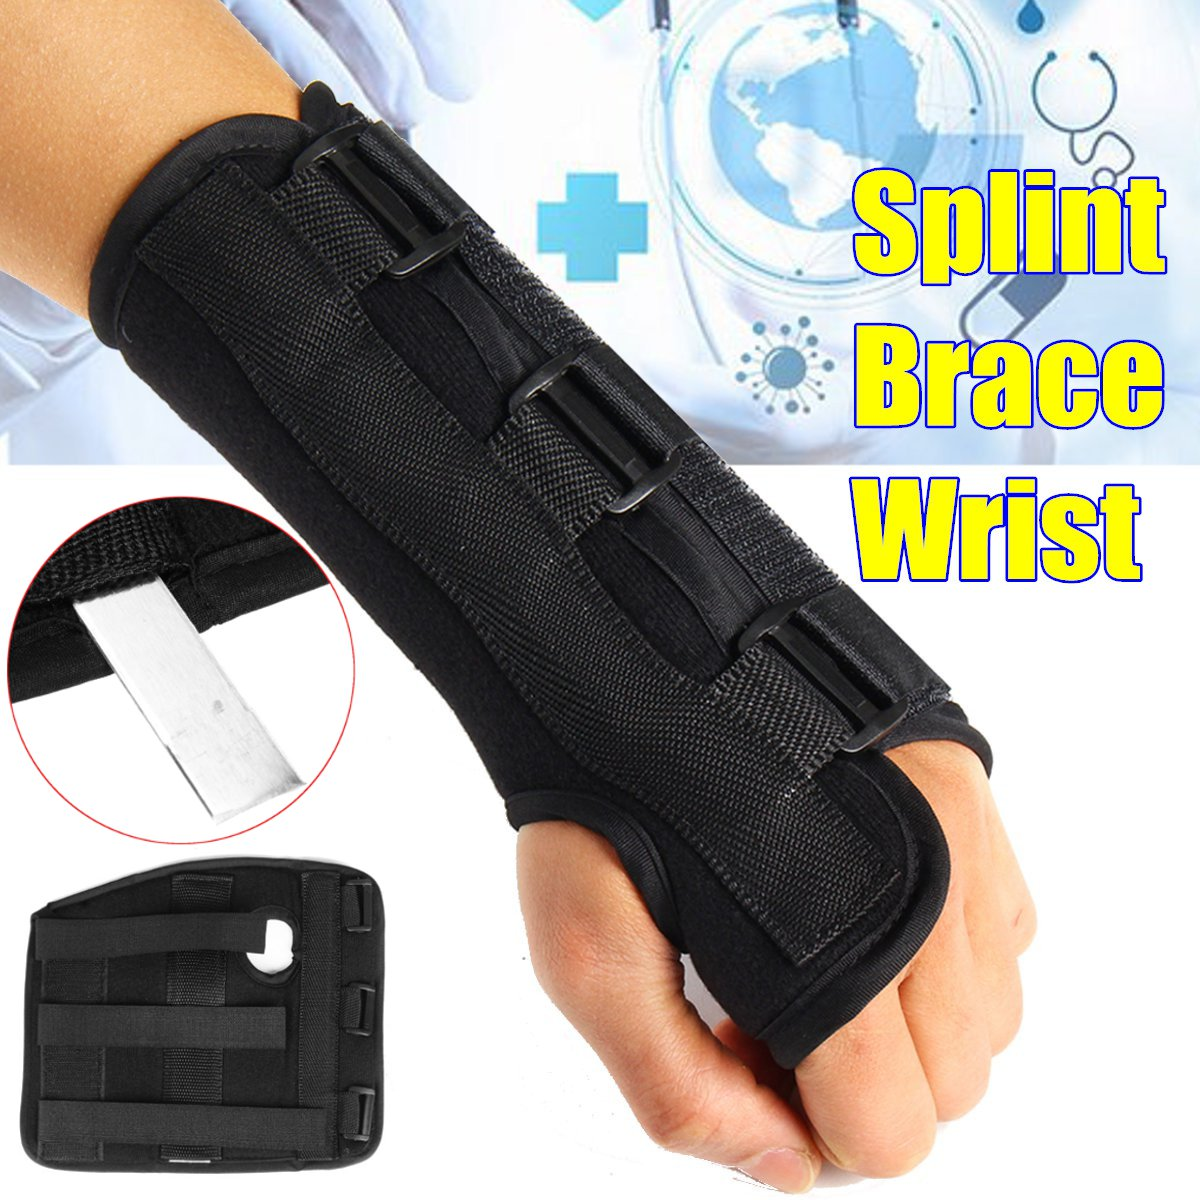 Brace Protector Support-Pads Band-Strap Forearm Splint Carpal Tunnel Medical-Wrist-Support